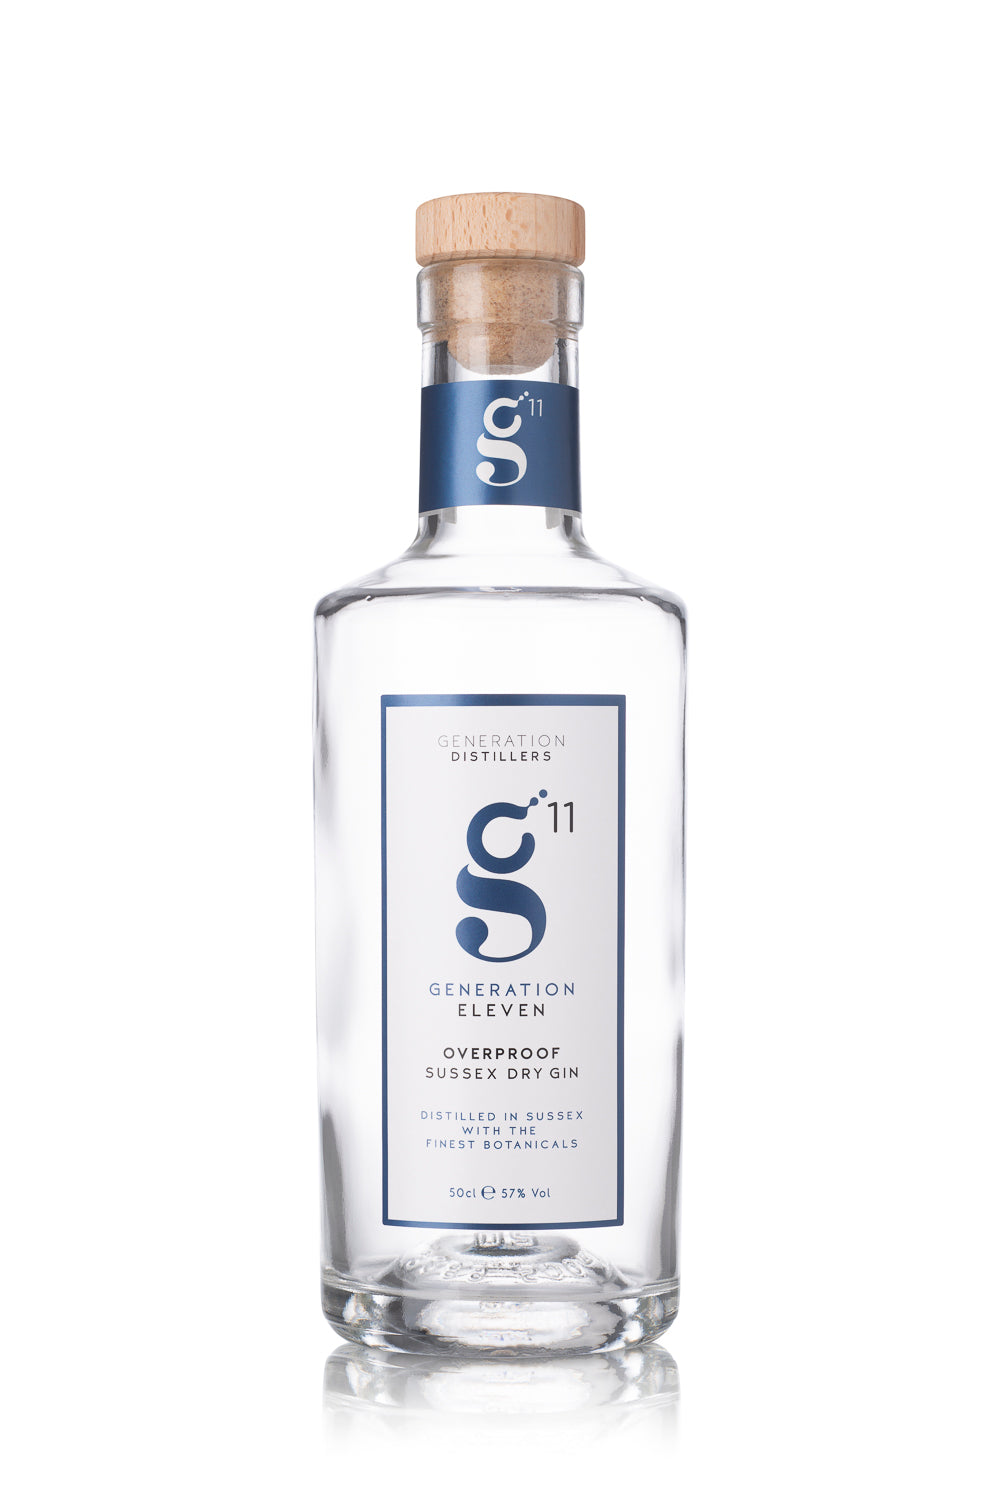 Generation 11 Overproof Sussex Dry Gin 50cl